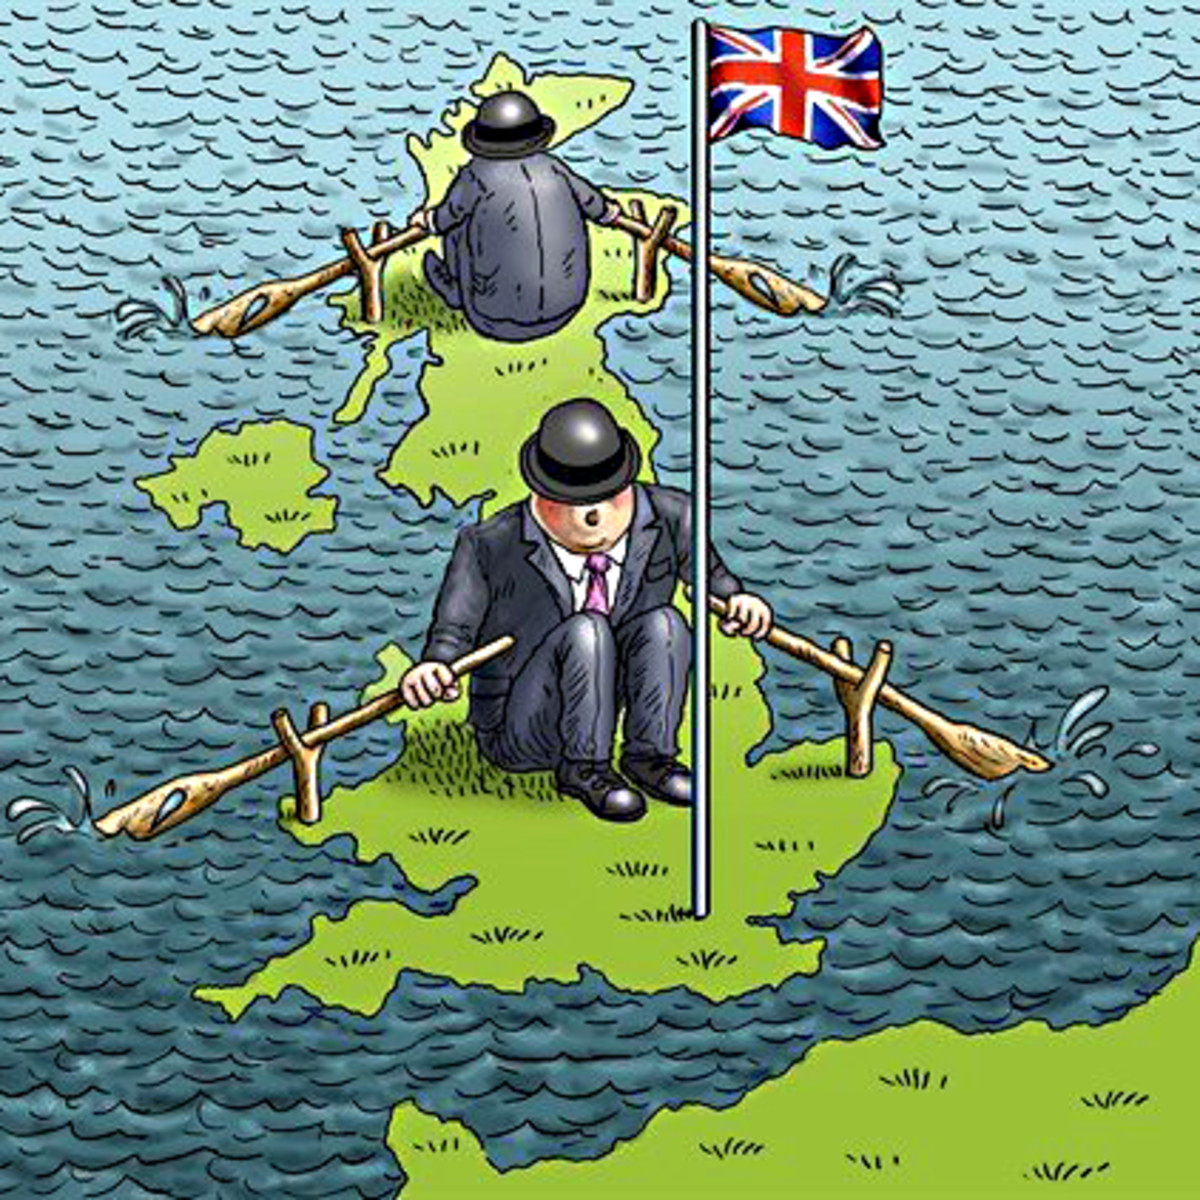 The Exit of the United Kingdom from the European Union